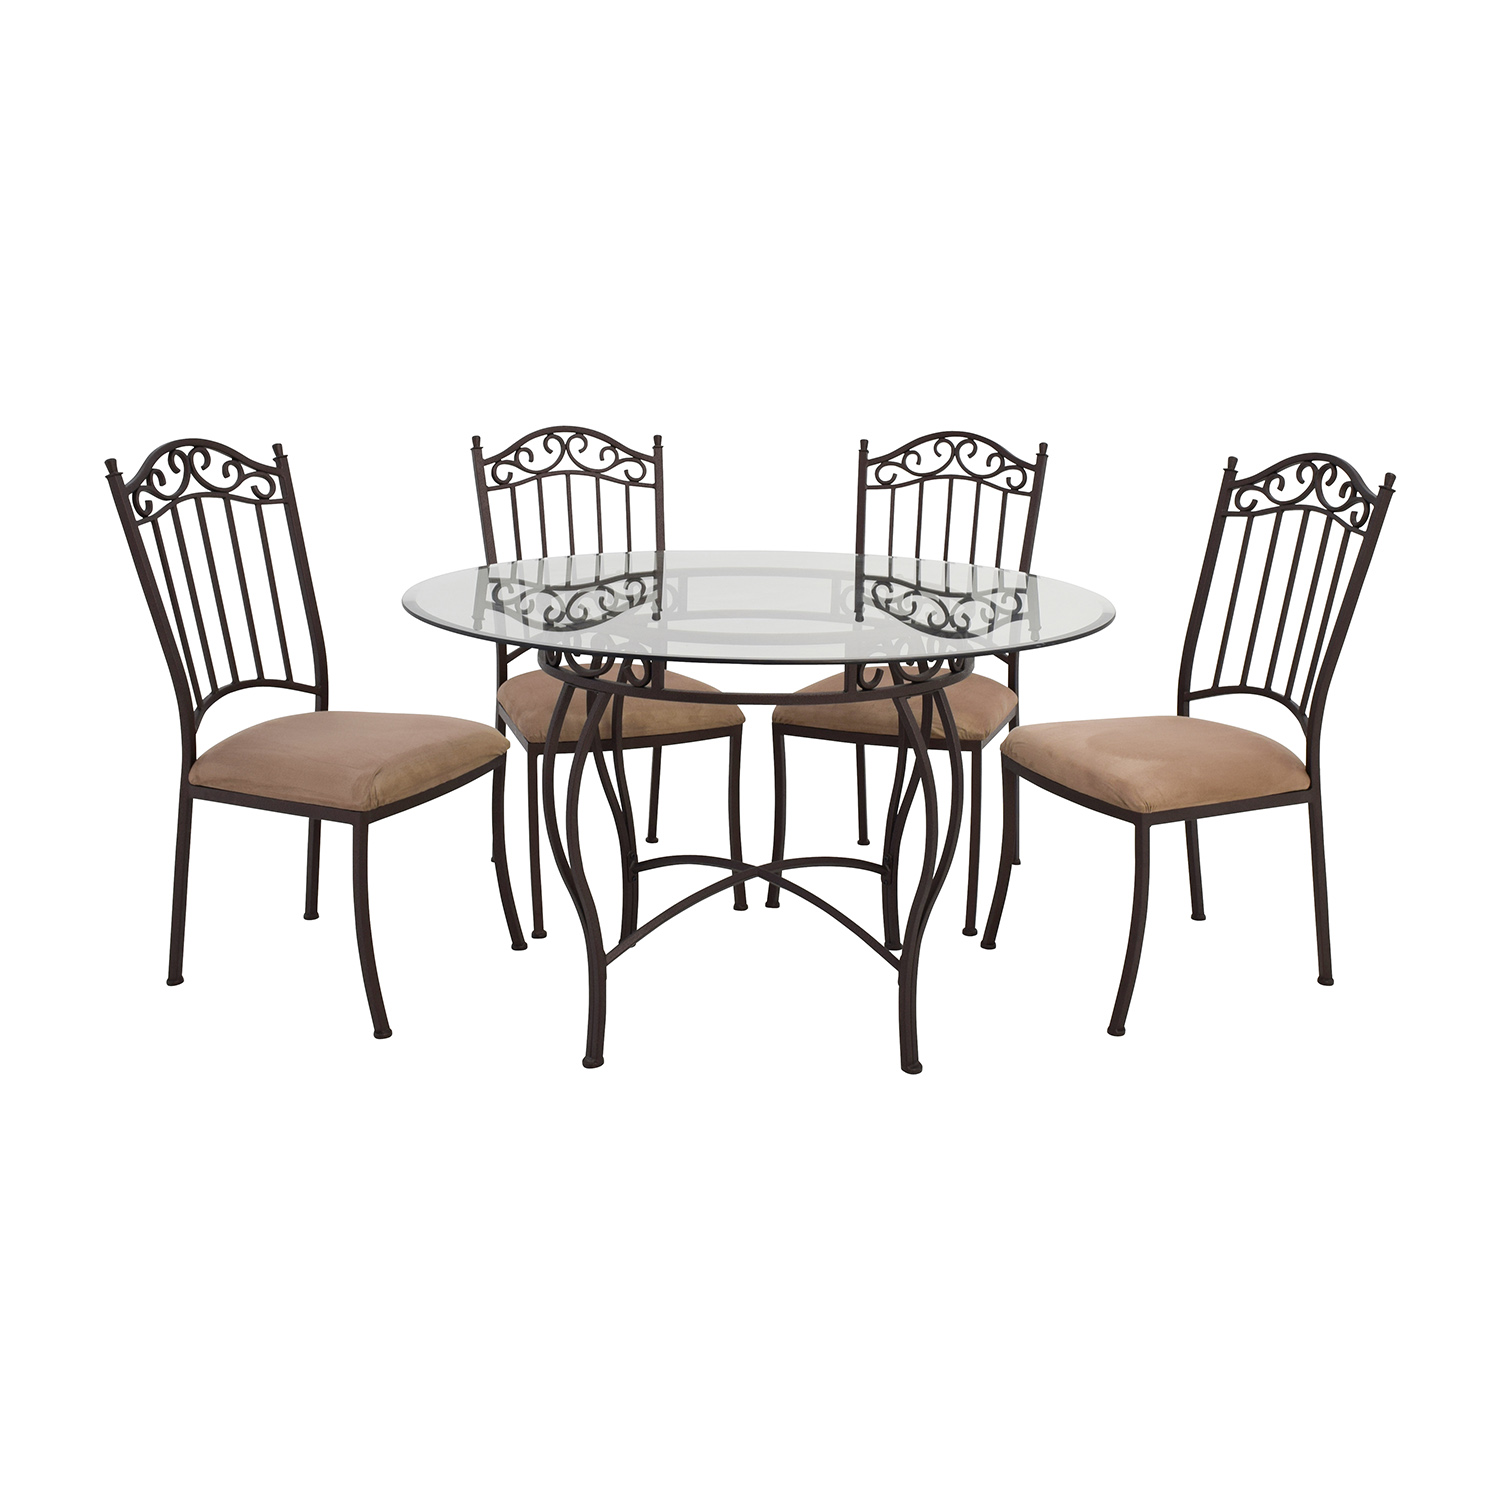 Wrought Iron Round Glass Table and Chairs